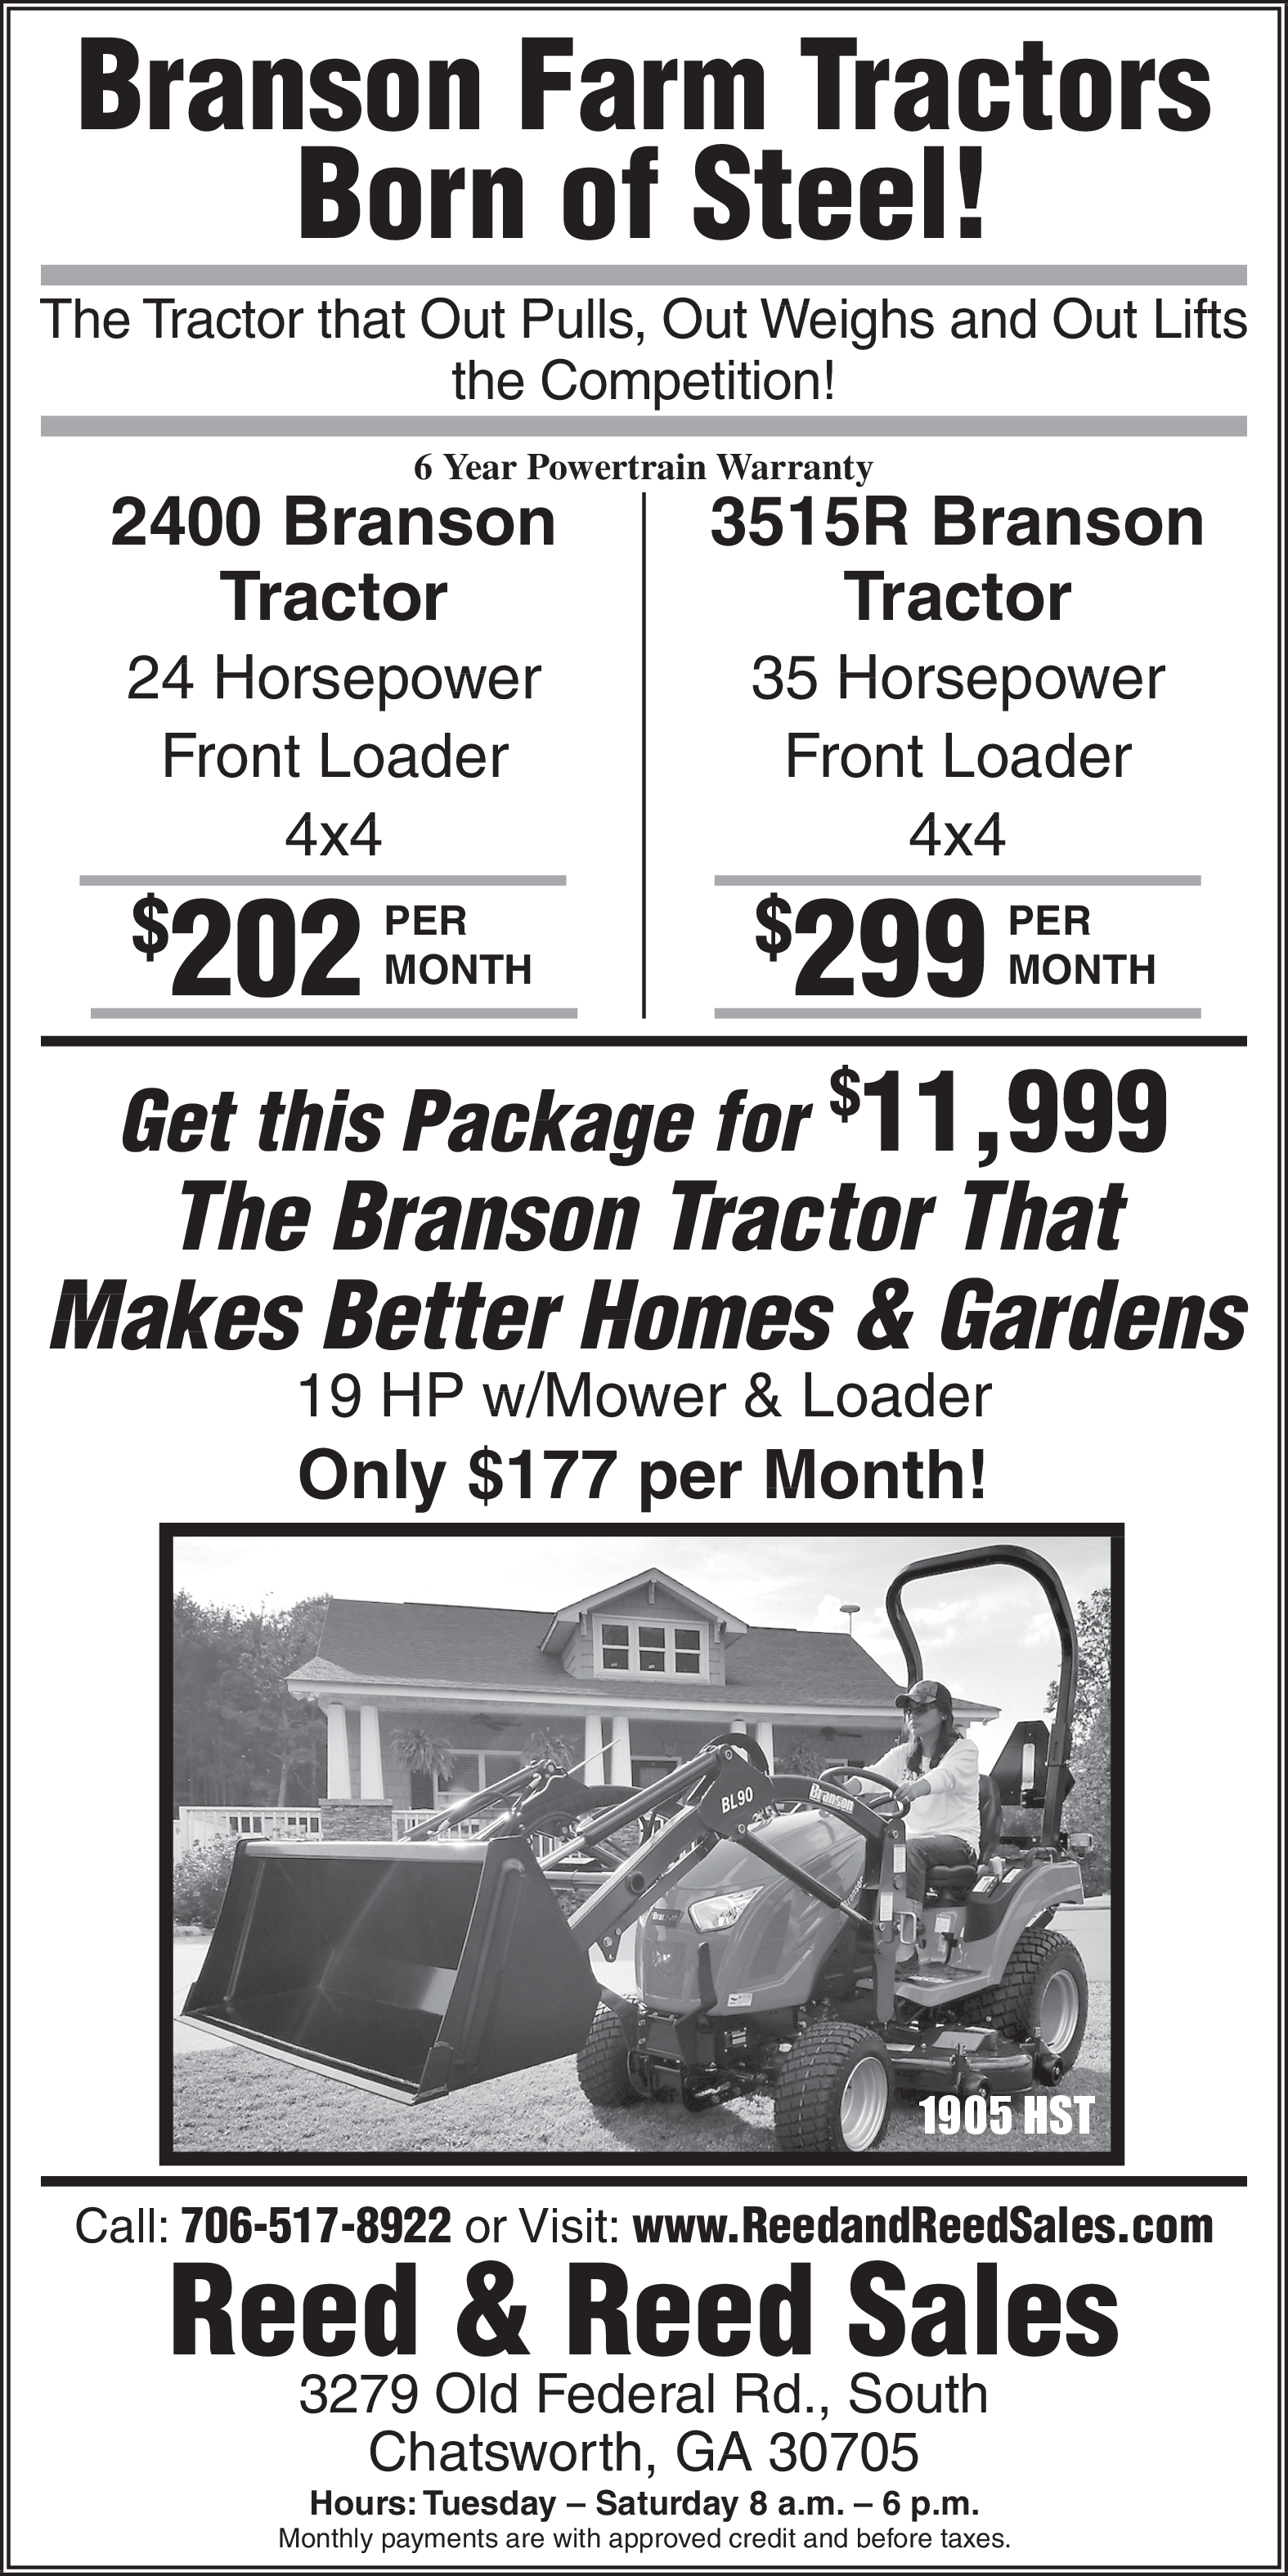 The Branson Tractor That Makes Better Homes And Gardens In Chatsworth Ga Tractor Dealerships Supplies Reed Reed Sales